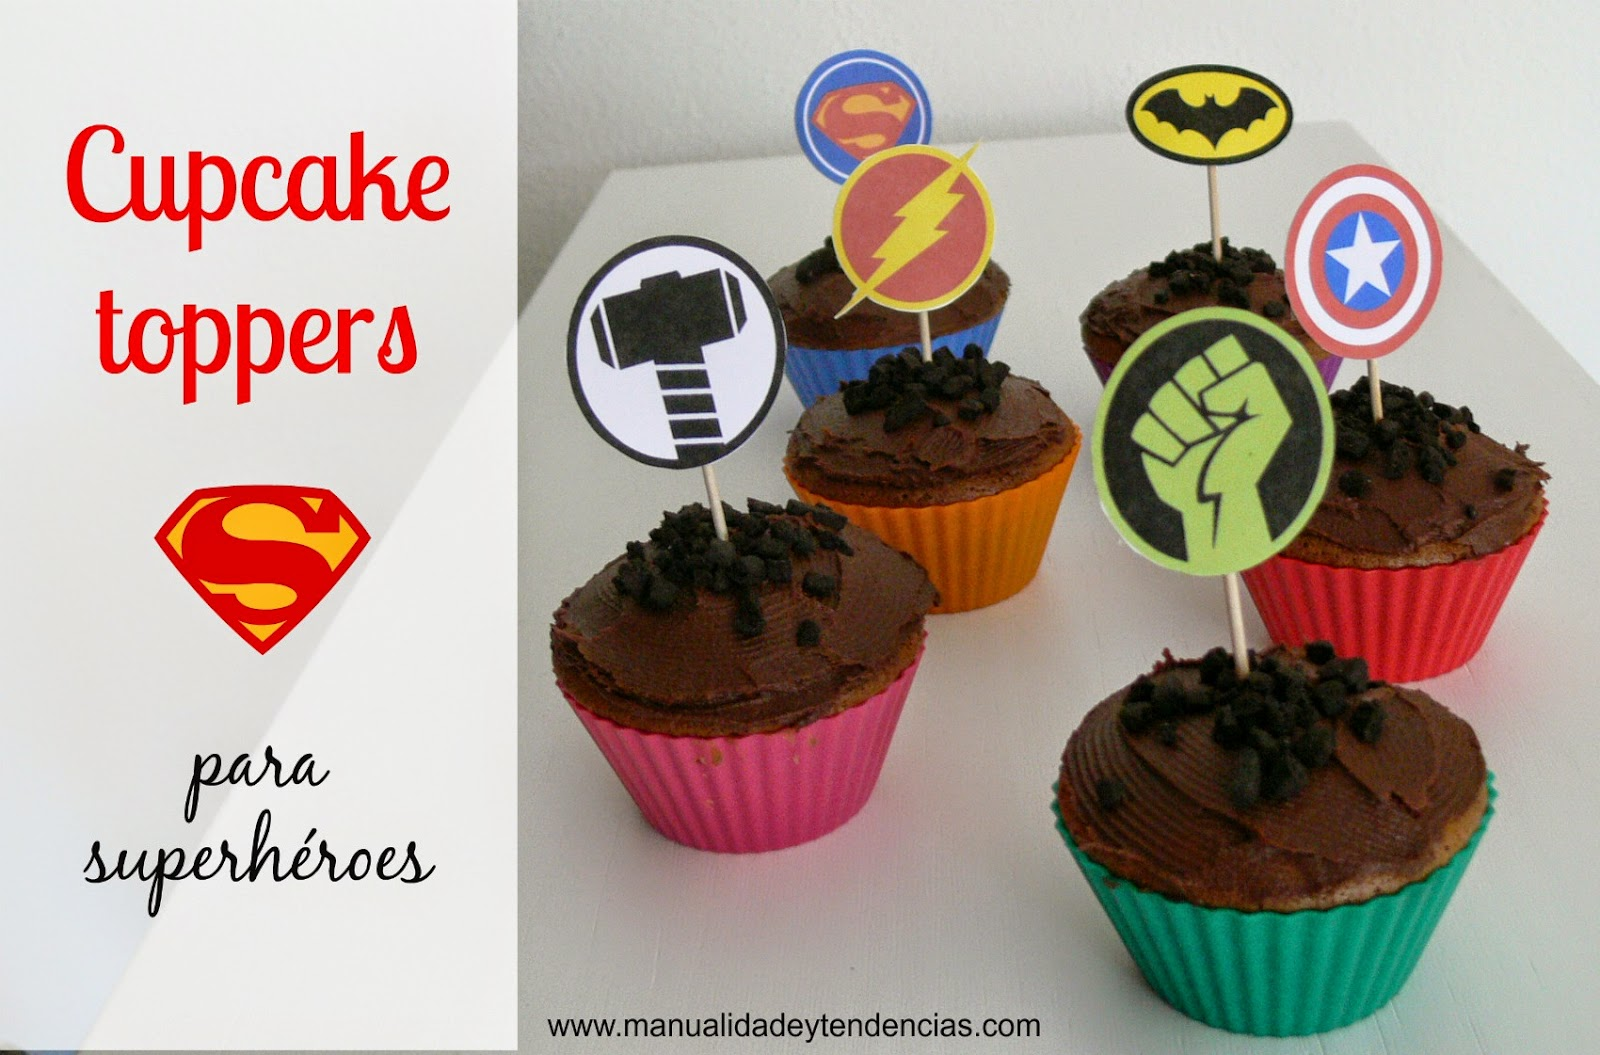 Cupcake toppers de superhéroes gratis